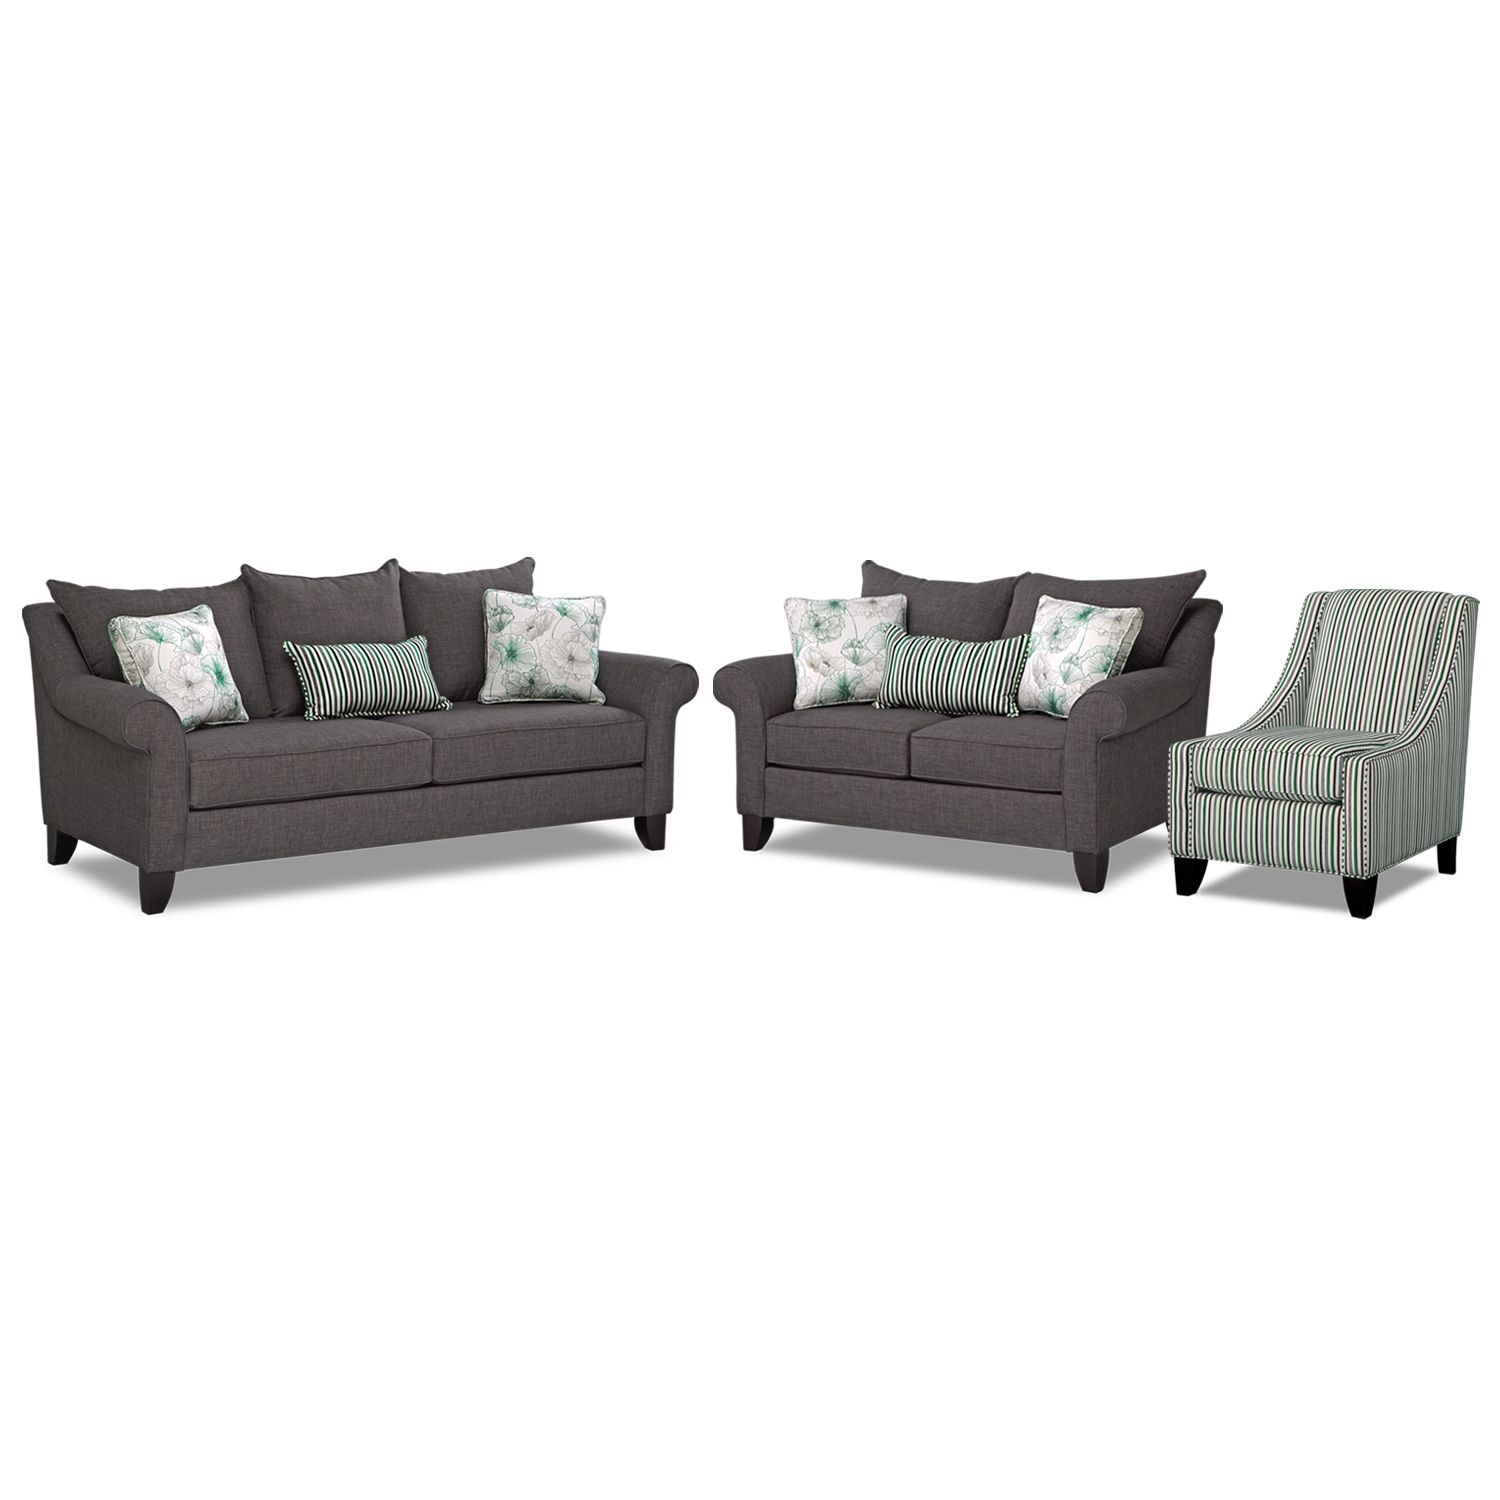 Swell Jasmine 3 Pc Living Room W Accent Chair American Ncnpc Chair Design For Home Ncnpcorg